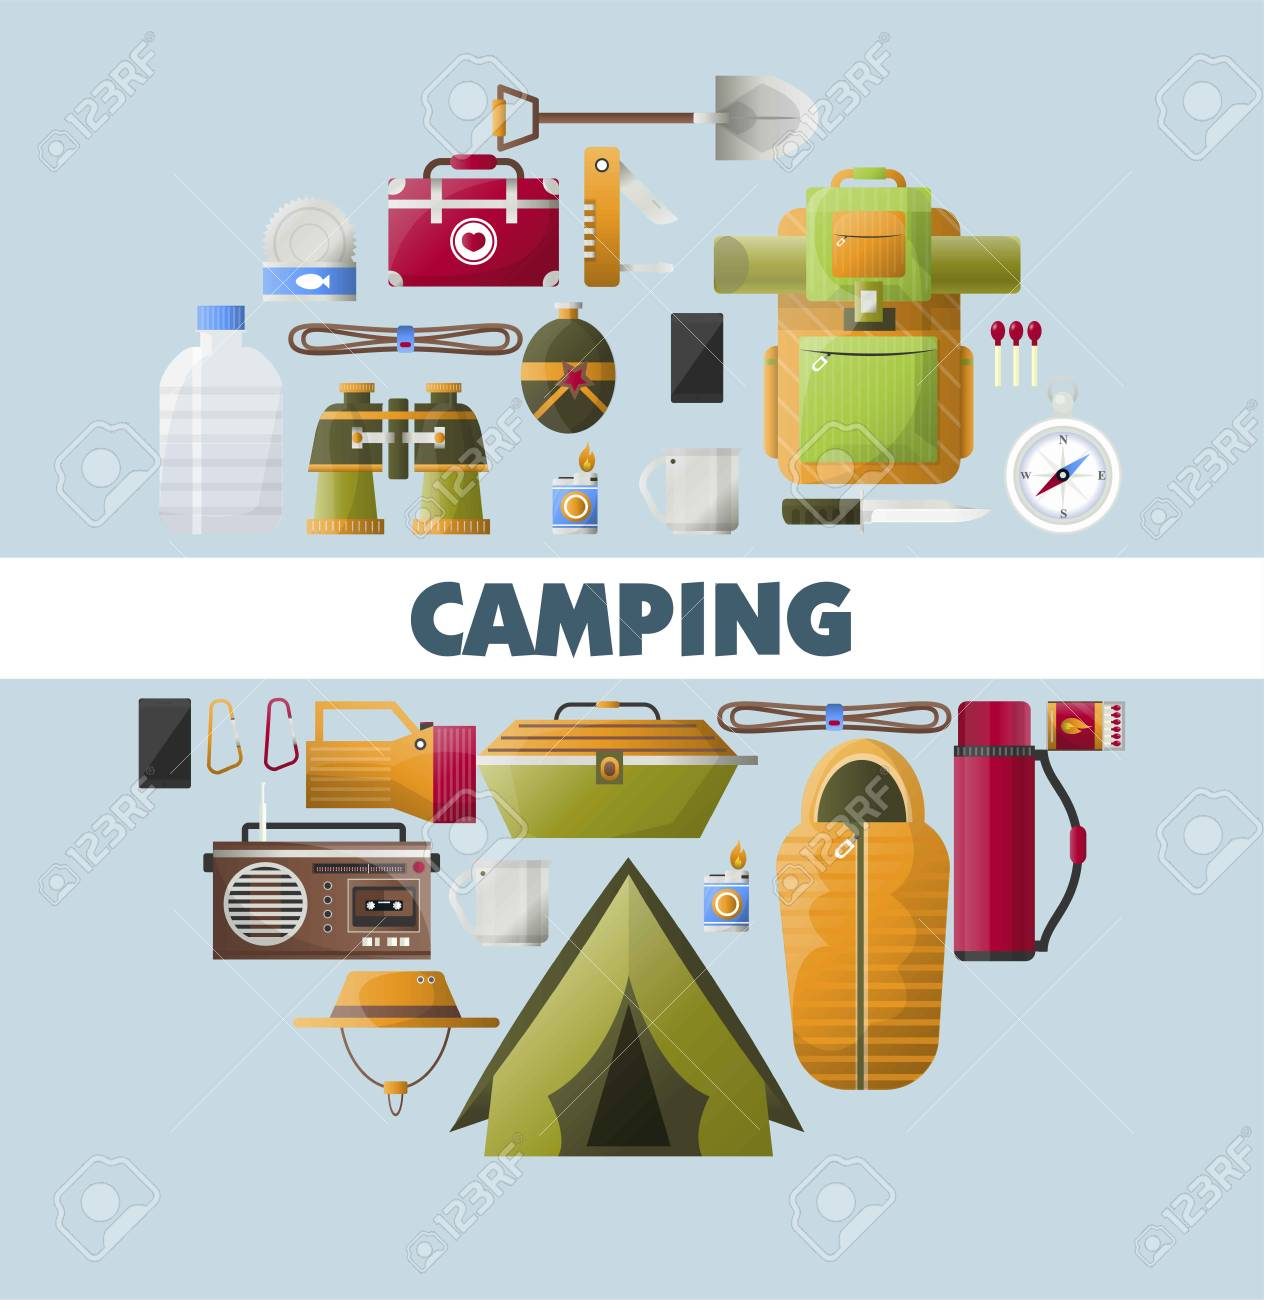 online retailer 9e9f1 39e25 Camping equipment poster for scout hiking or mountaineering camp..